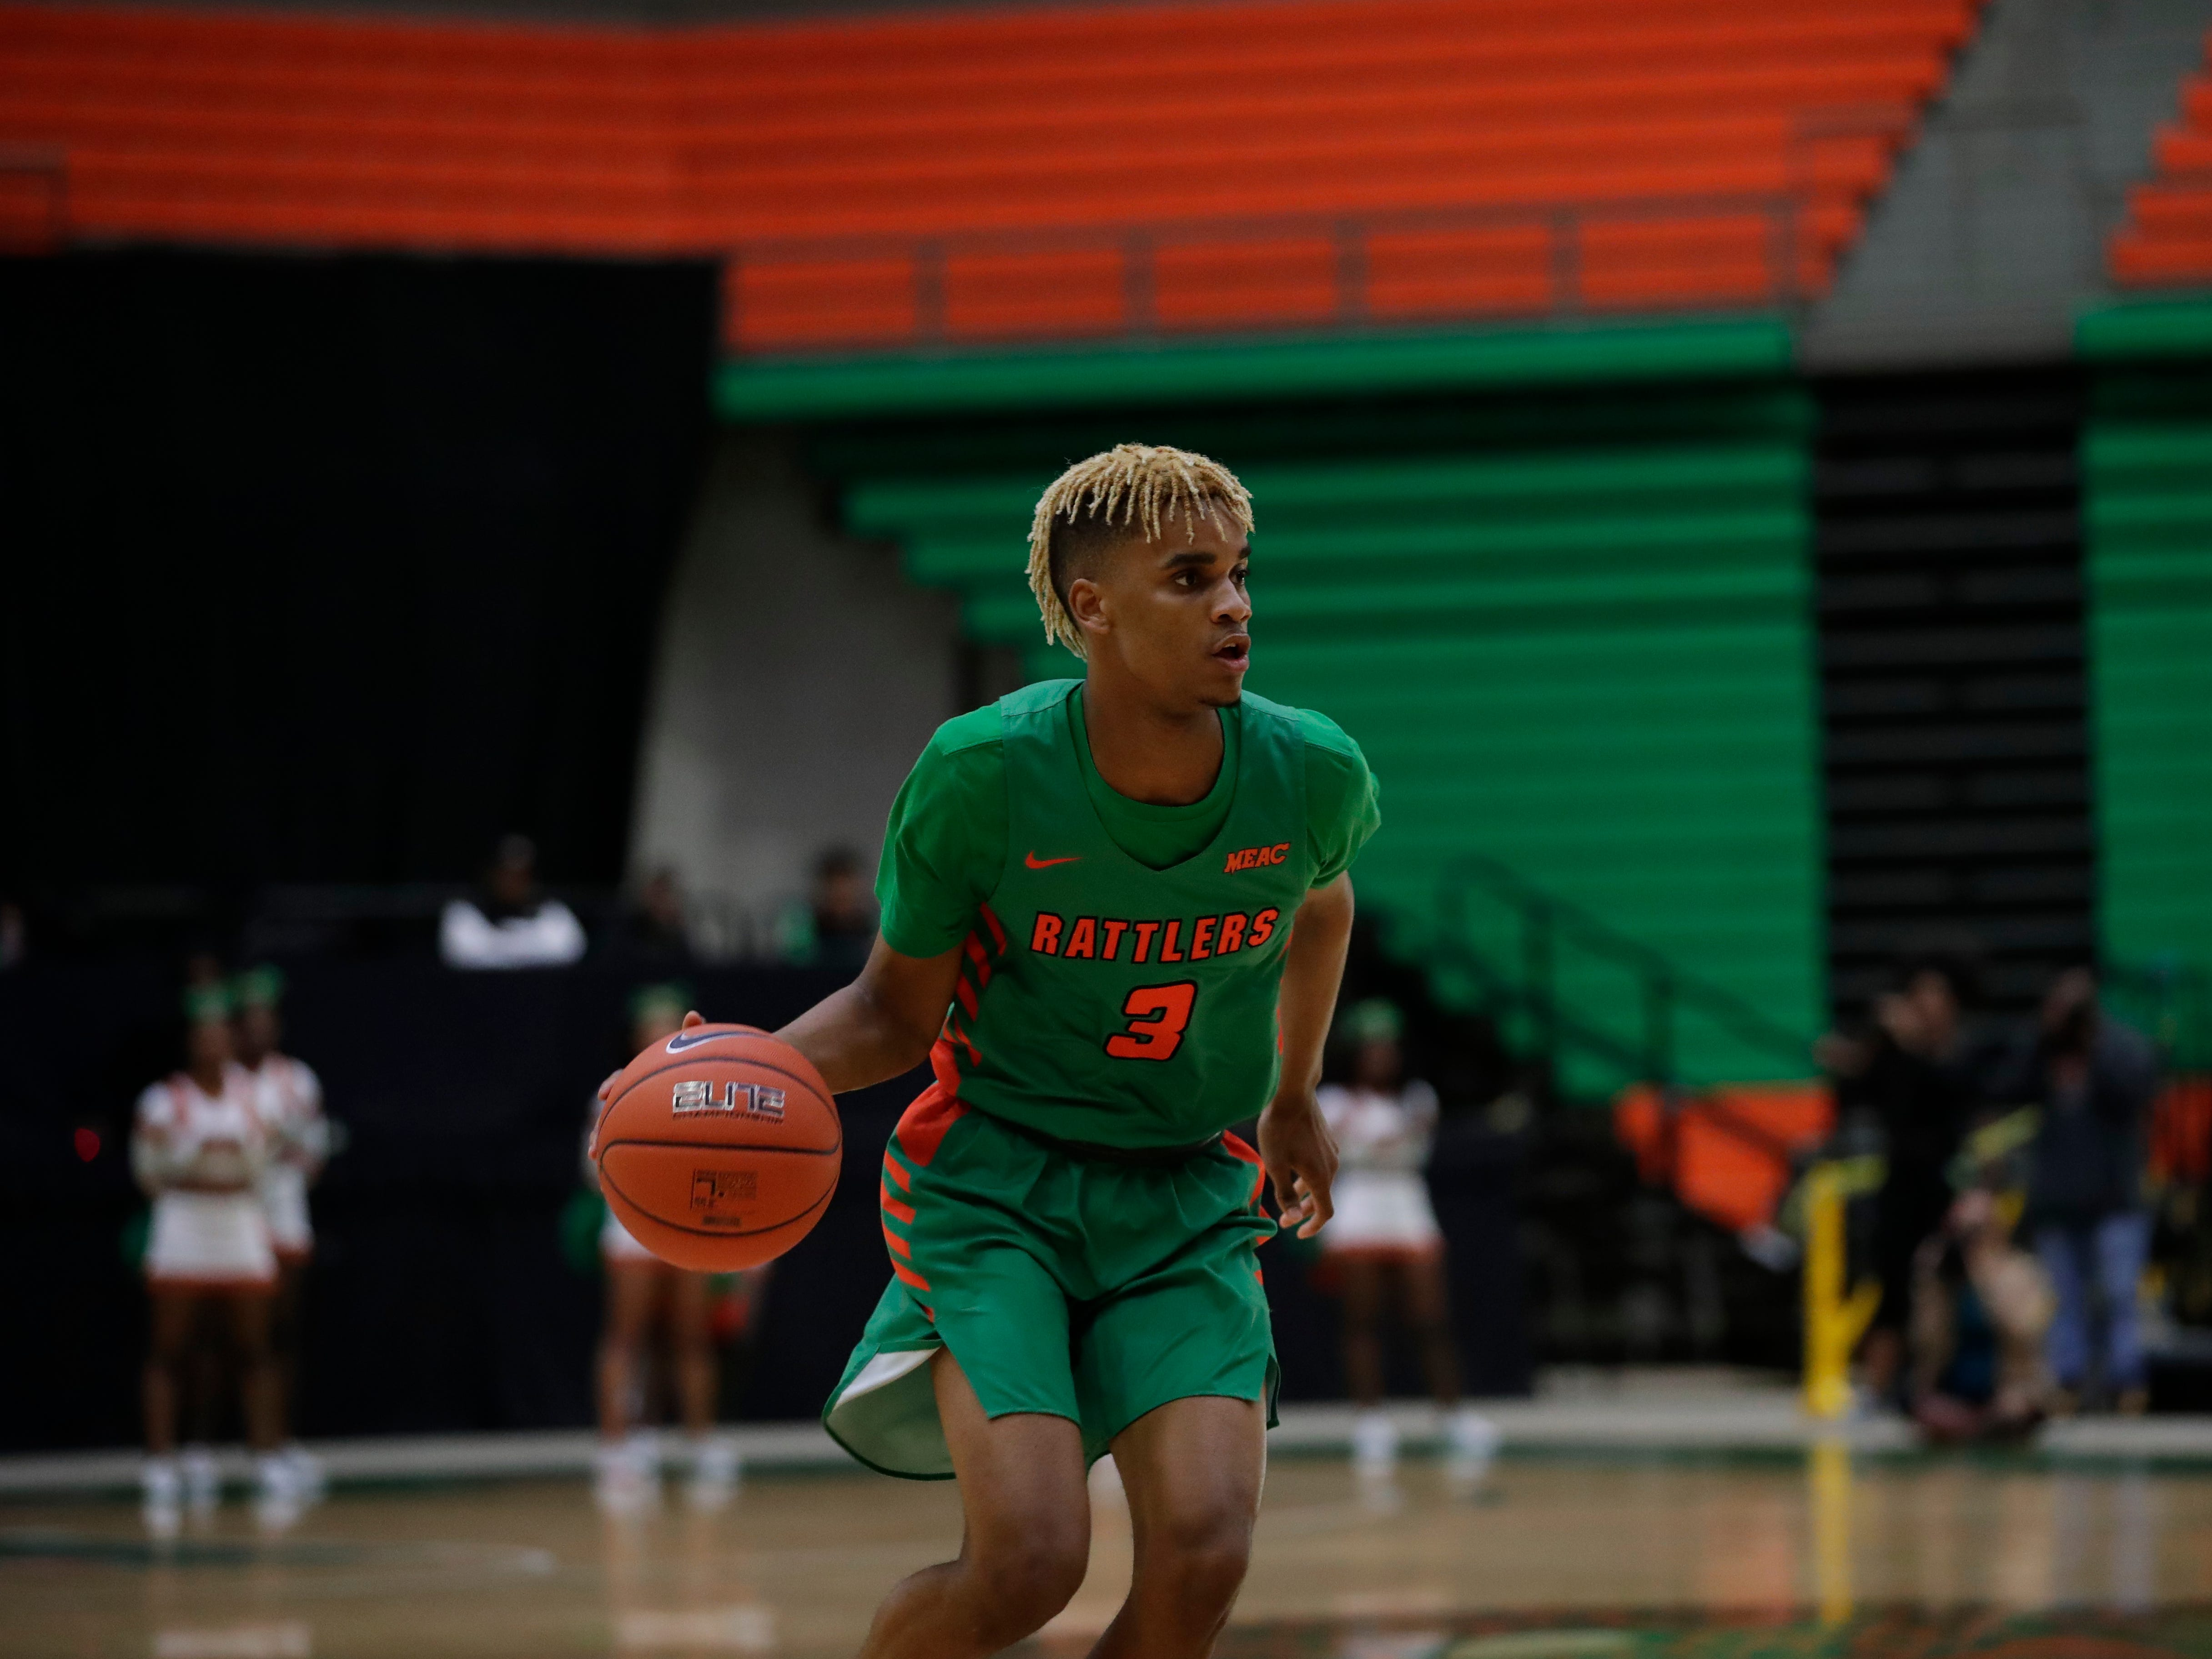 Florida A&M guard M.J. Randolph had 9 points in a 66-54 loss to Norfolk State at the Alfred Lawson Jr. Multipurpose Center Monday, Feb. 11, 2019.